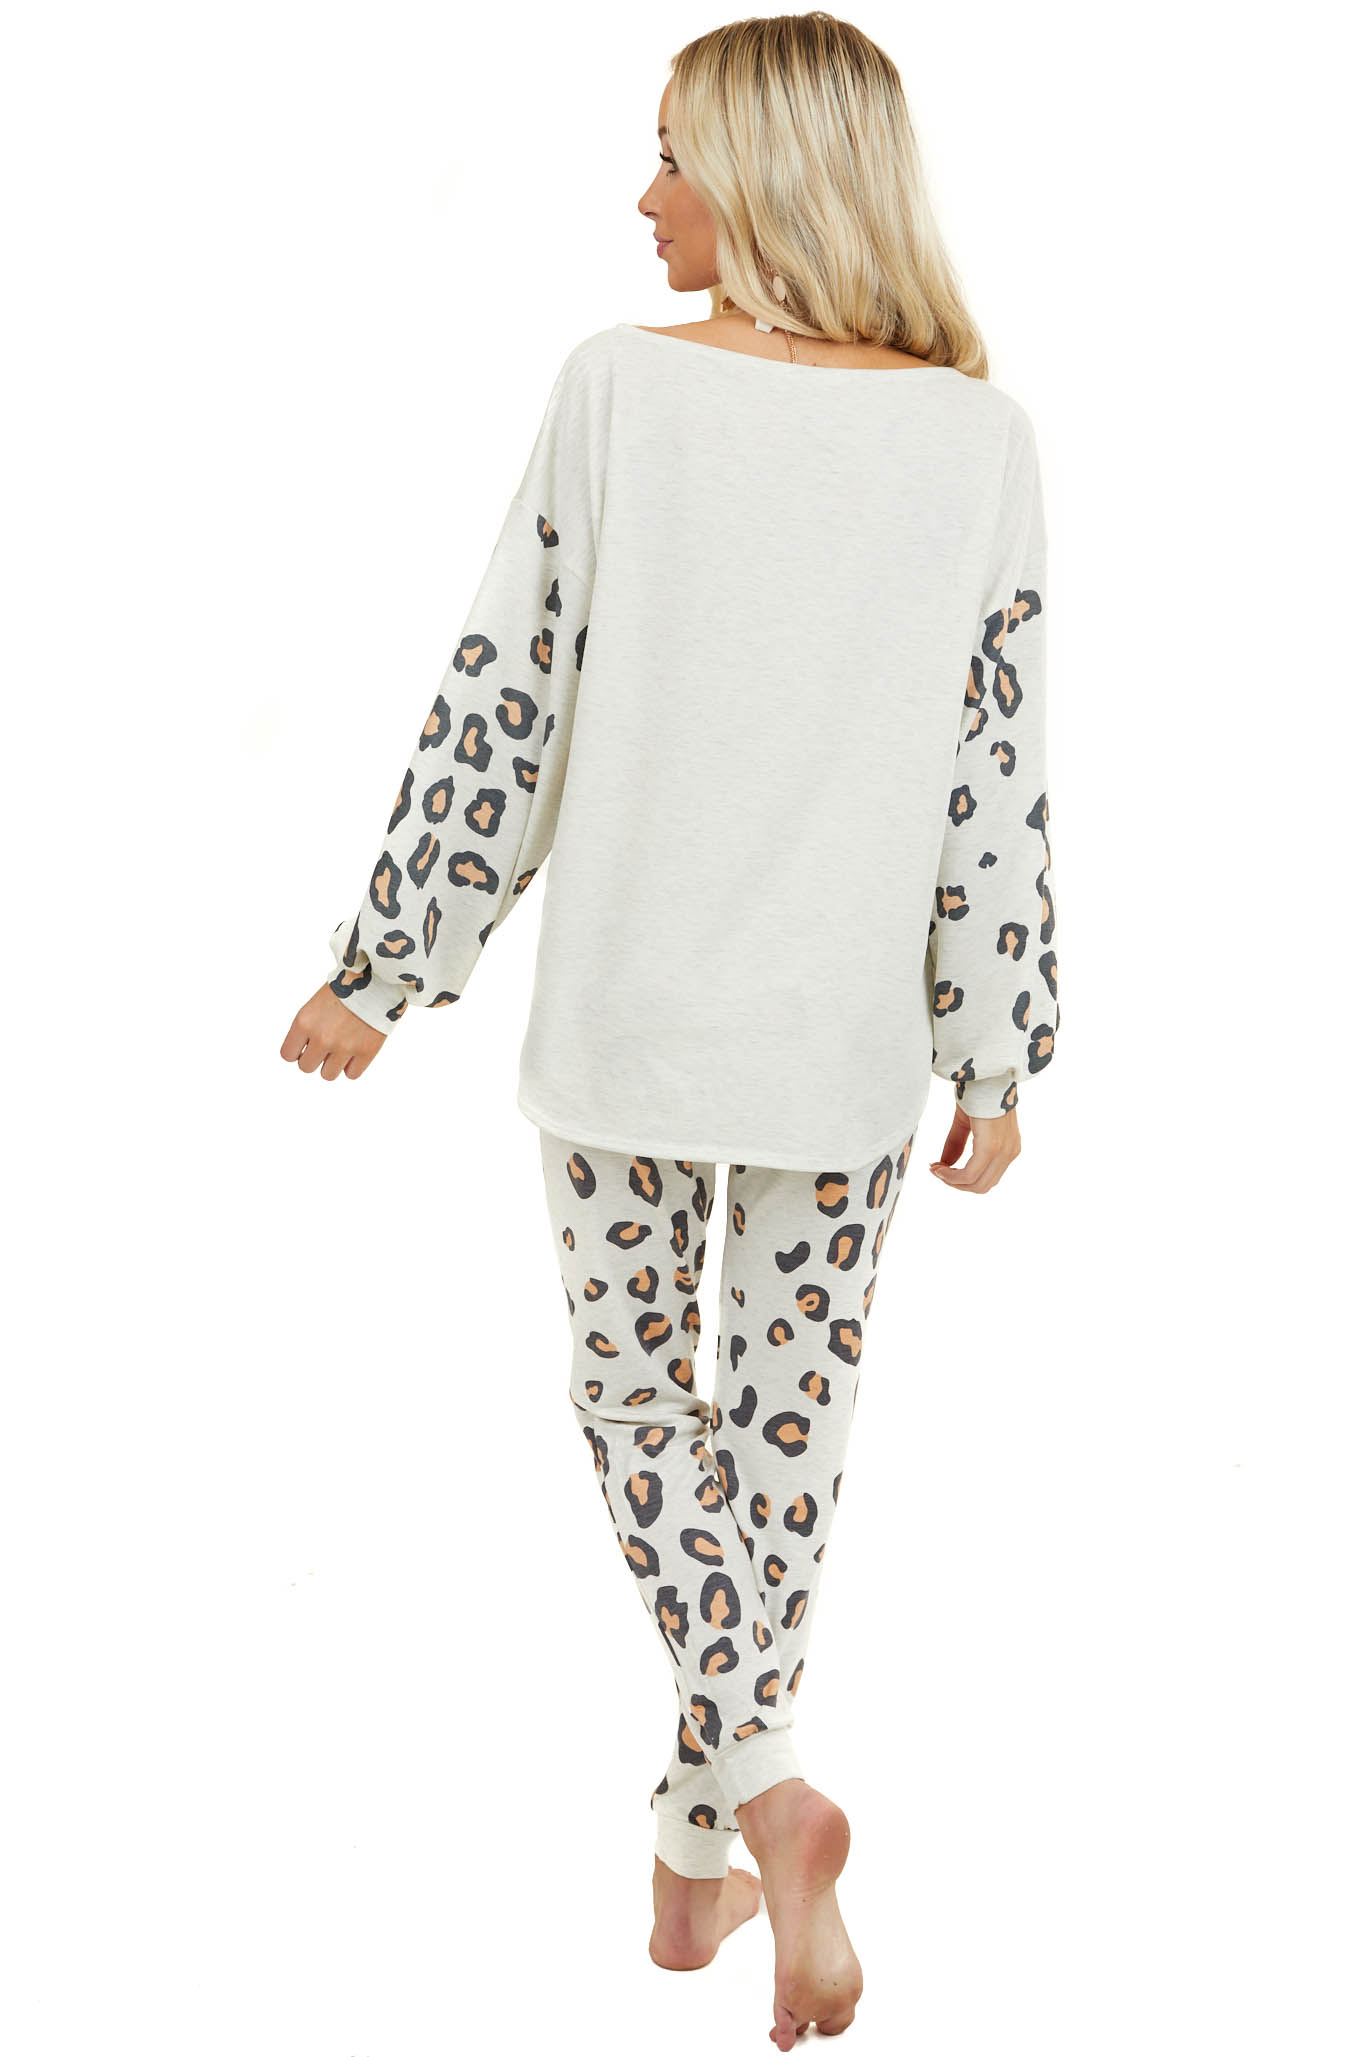 Heathered Cream Knit Top with Long Leopard Print Sleeves